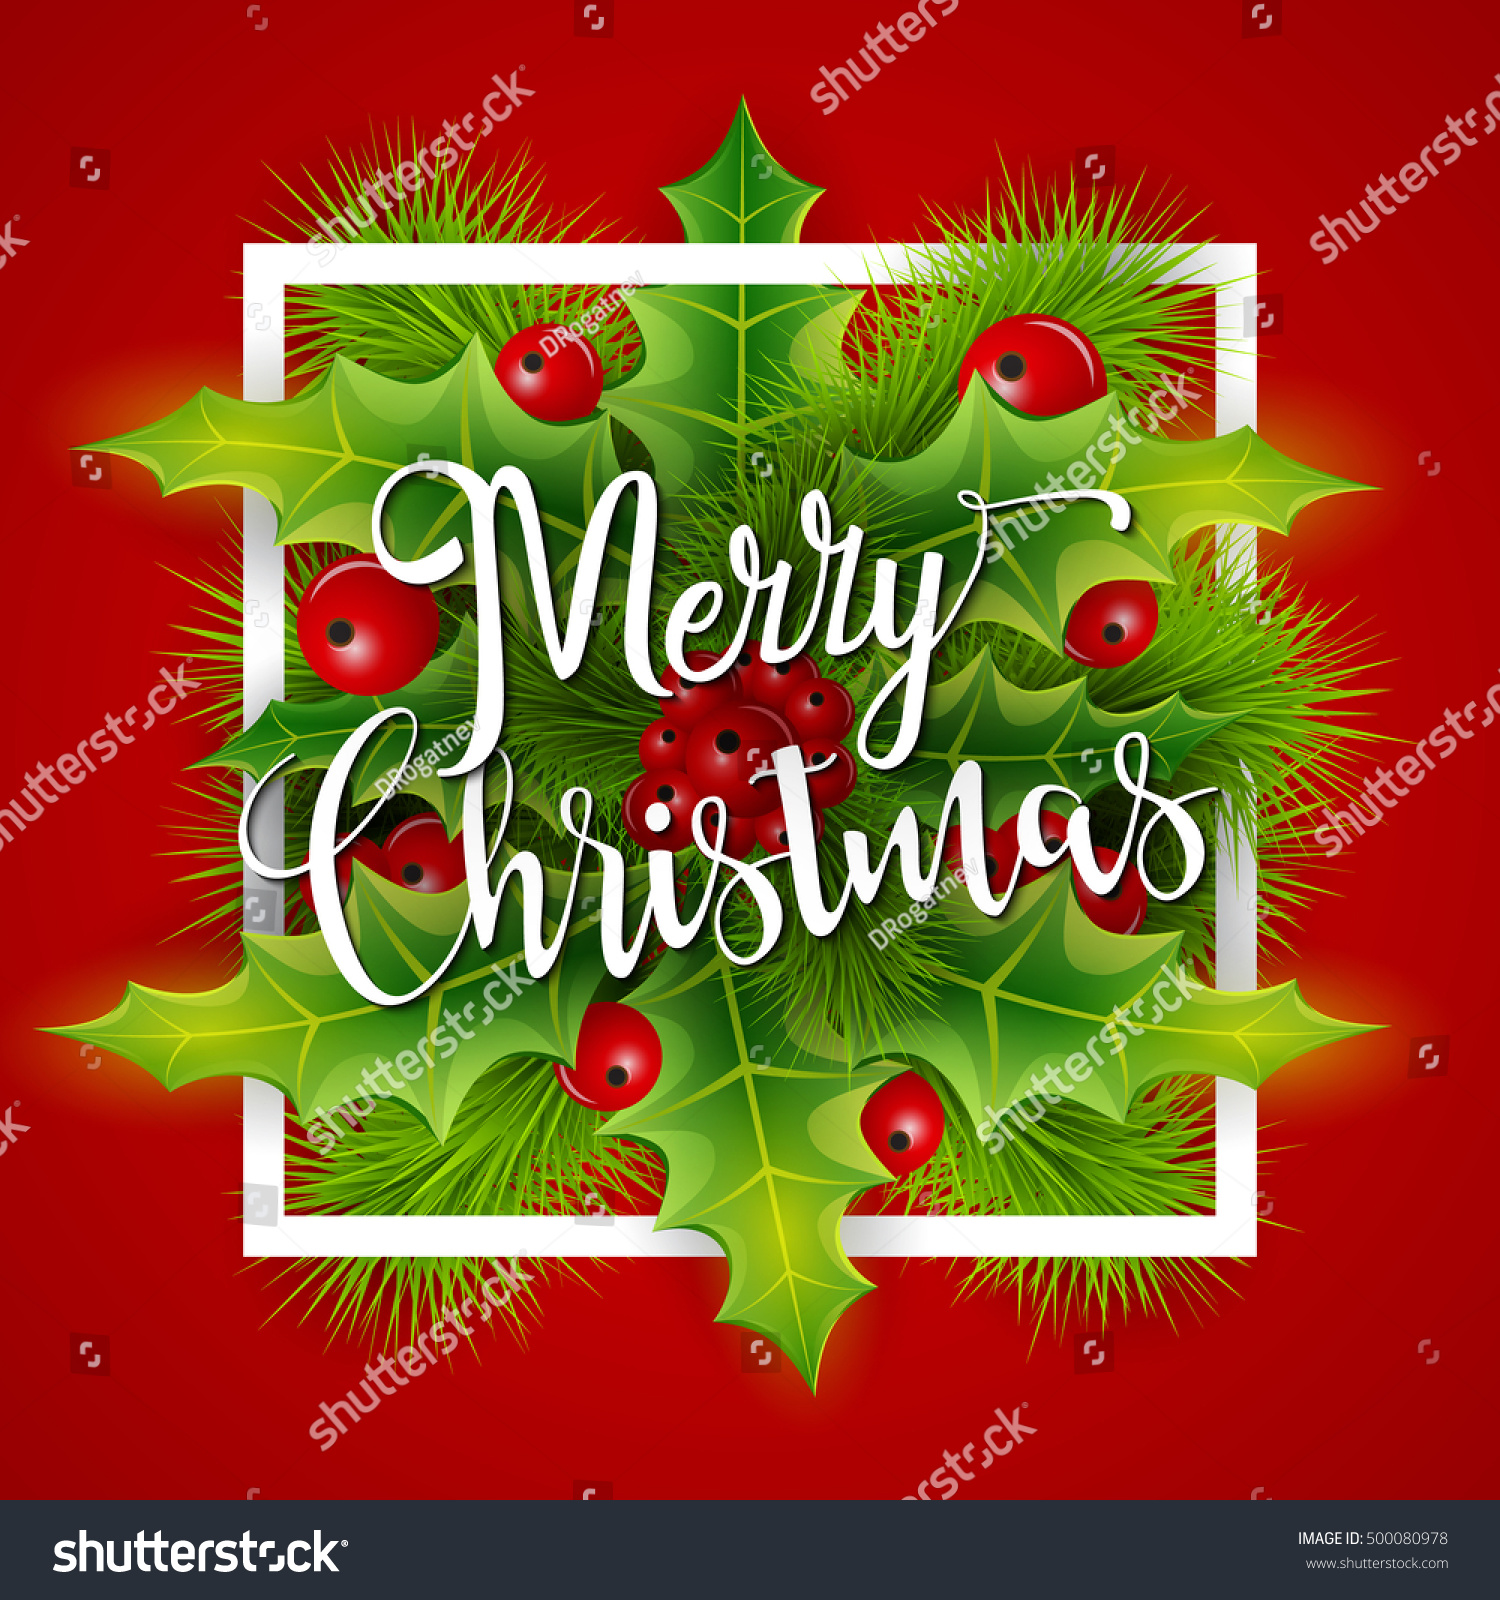 Merry christmas greetings card christmas holly stock vector merry christmas greetings card with christmas holly christmas and new year background for your design kristyandbryce Image collections